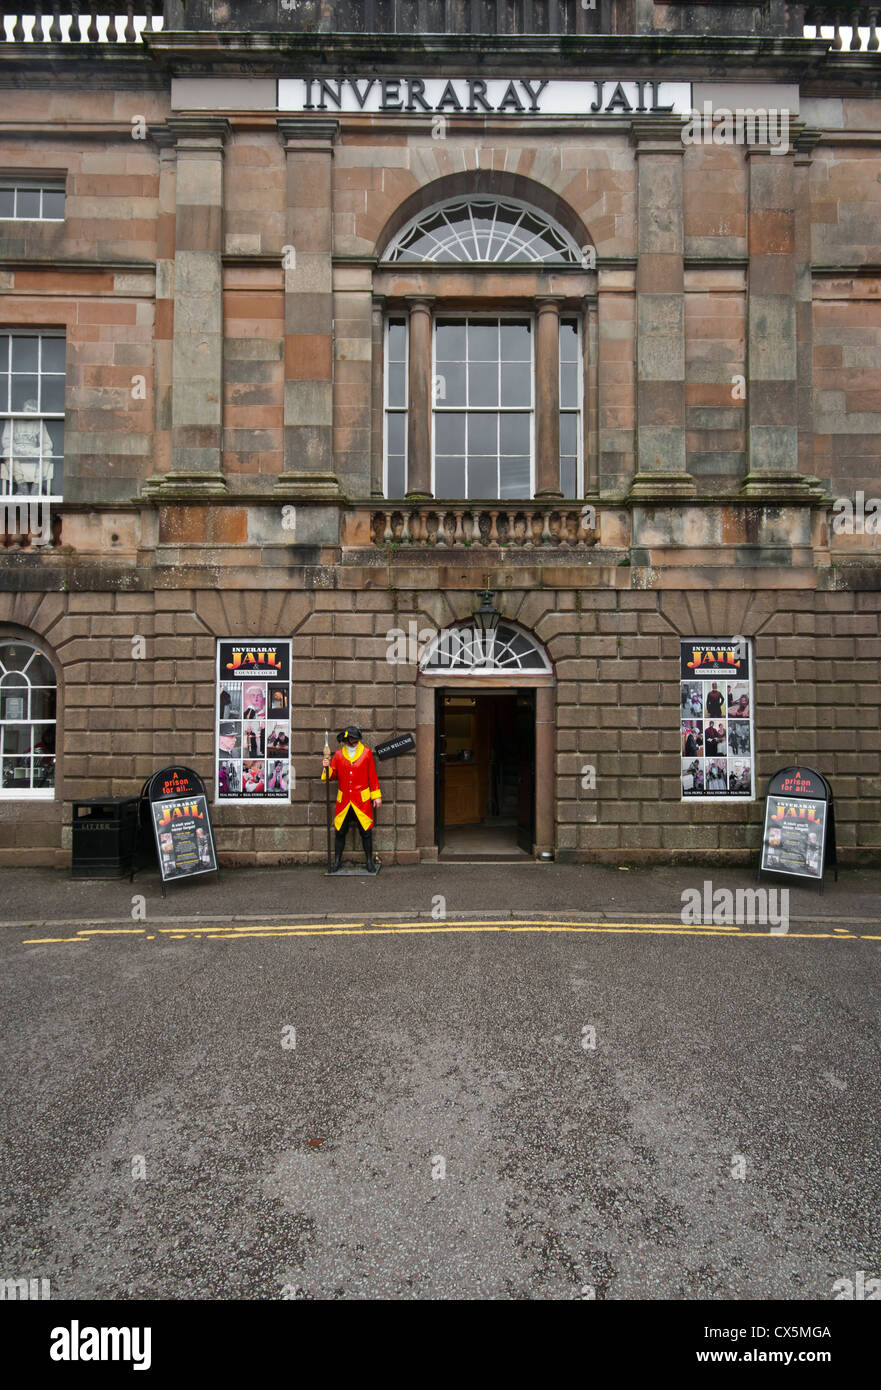 Inveraray Jail And County Court Argyll and Bute Scotland - Stock Image